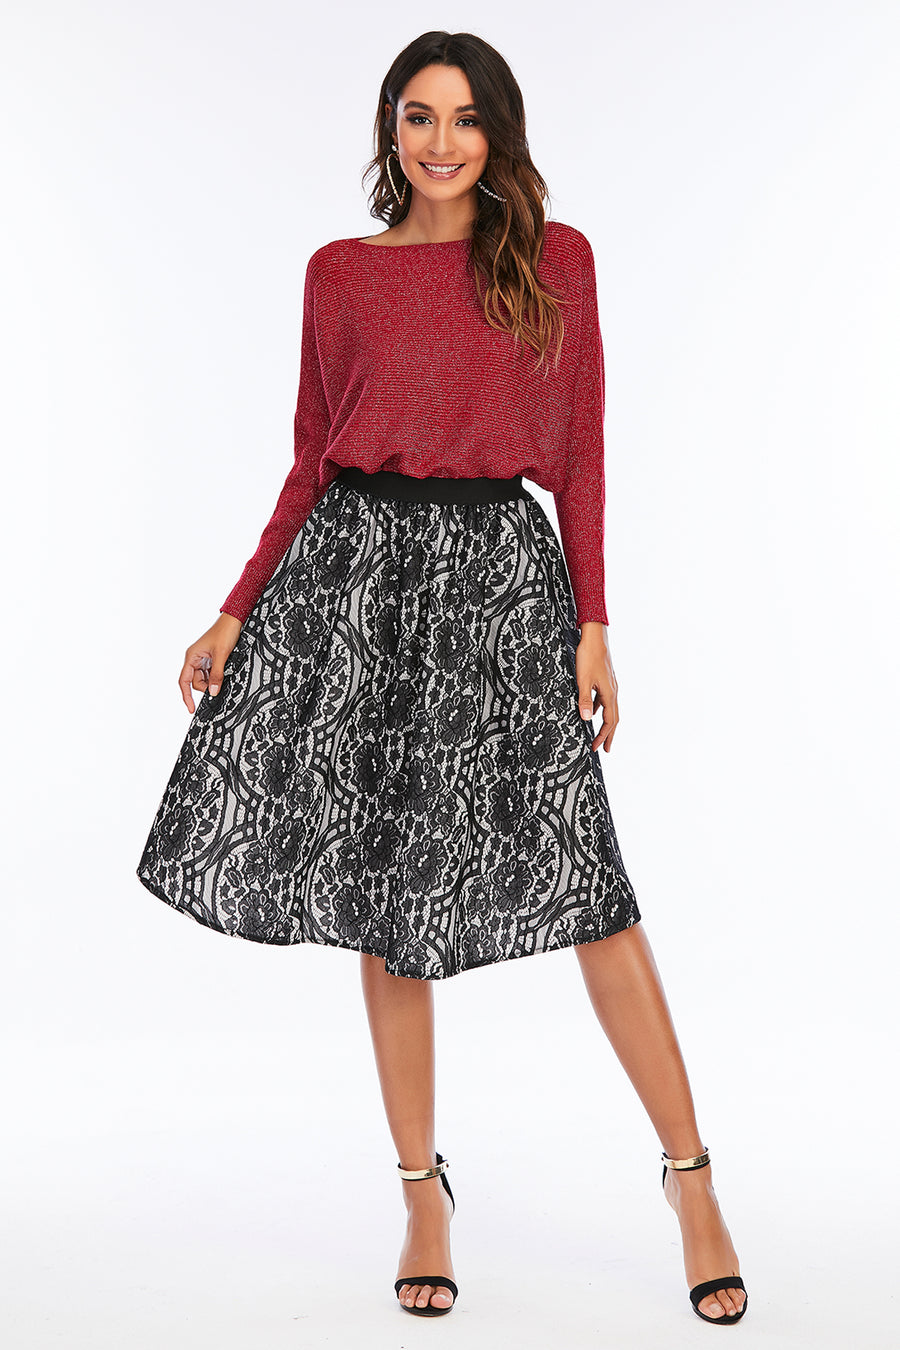 Mantra Pakistan Black floral lace skirt | Western Wear